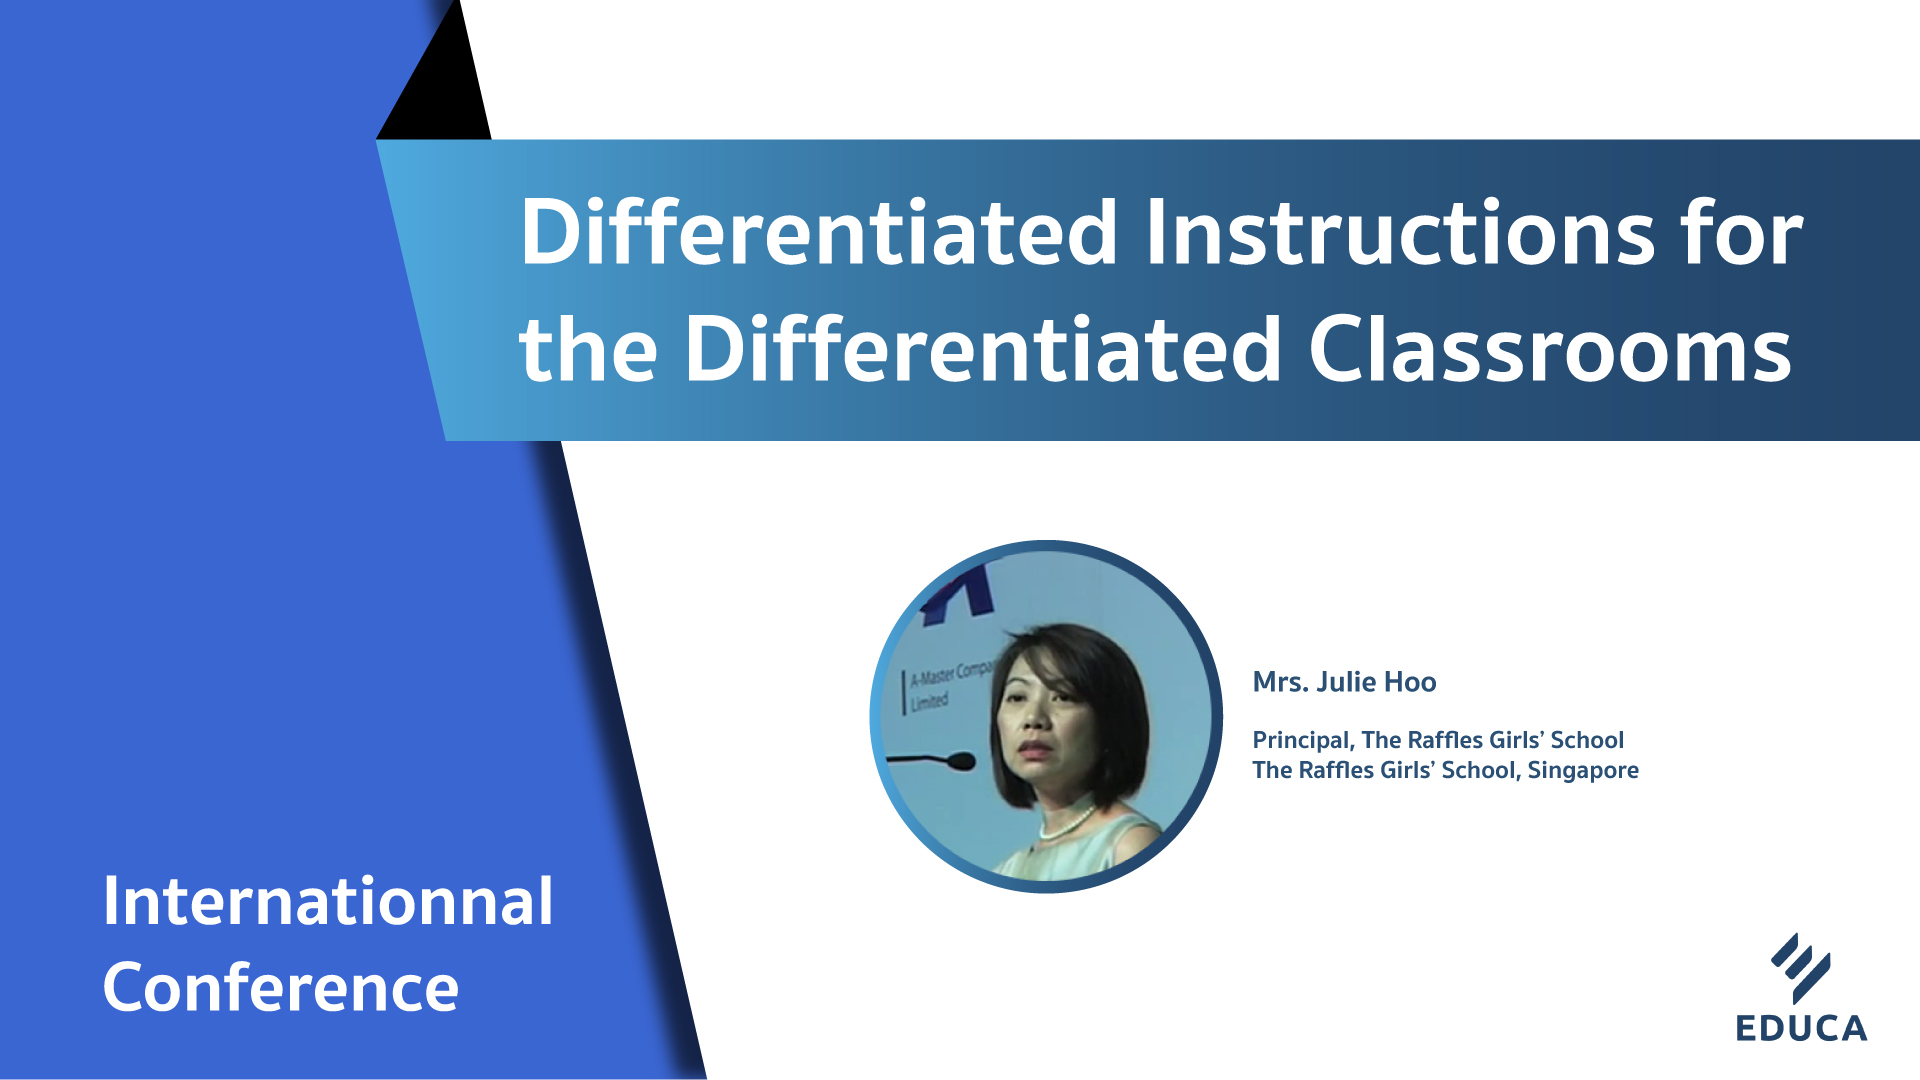 Differentiated Instructions for the Differentiated Classrooms